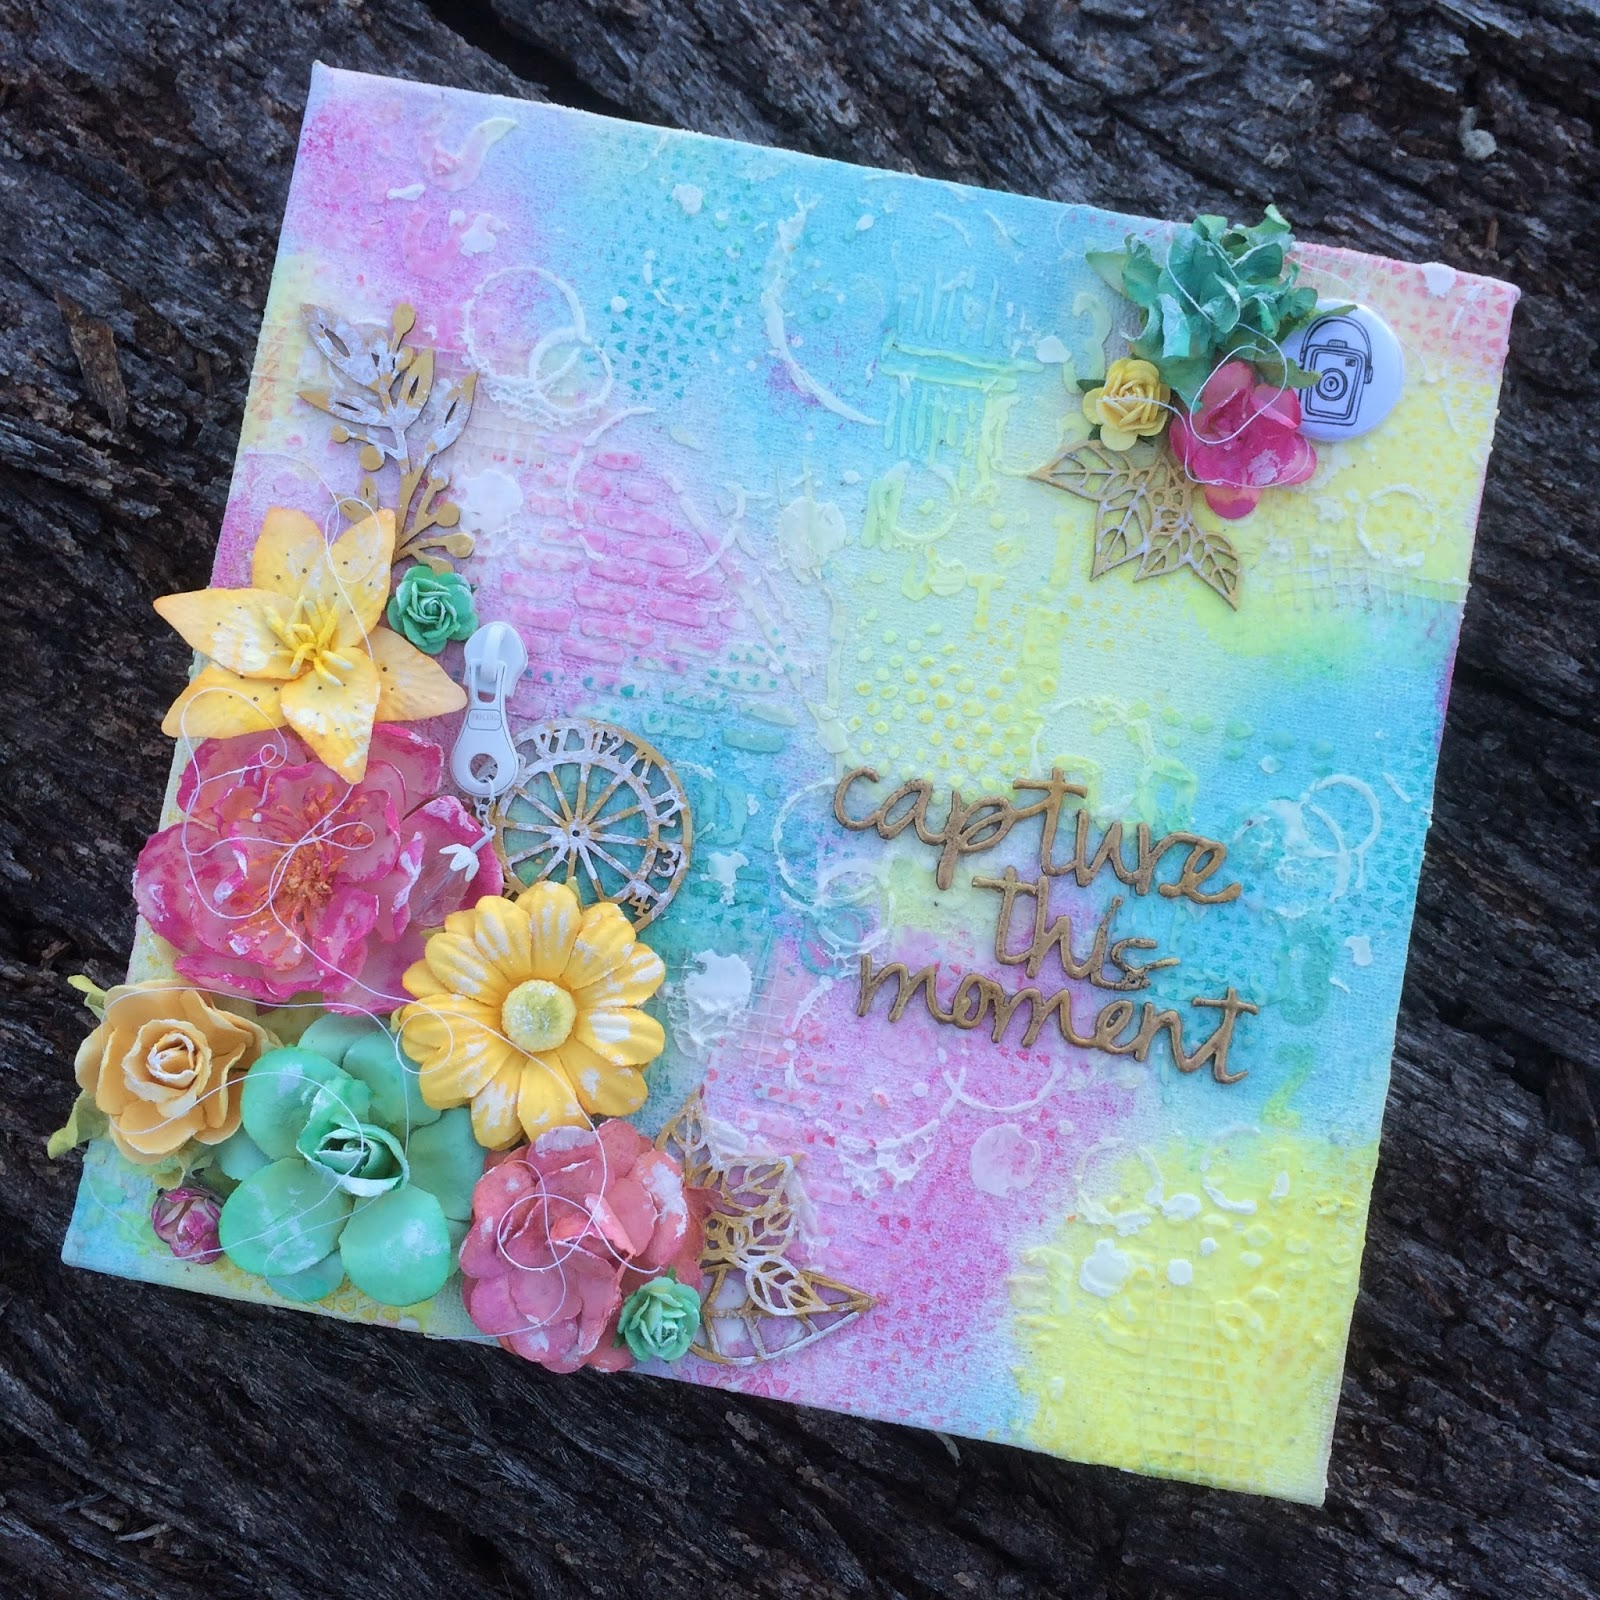 How to scrapbook canvas - Know That S It S Now Bringing A Smile To Someone Else S Face